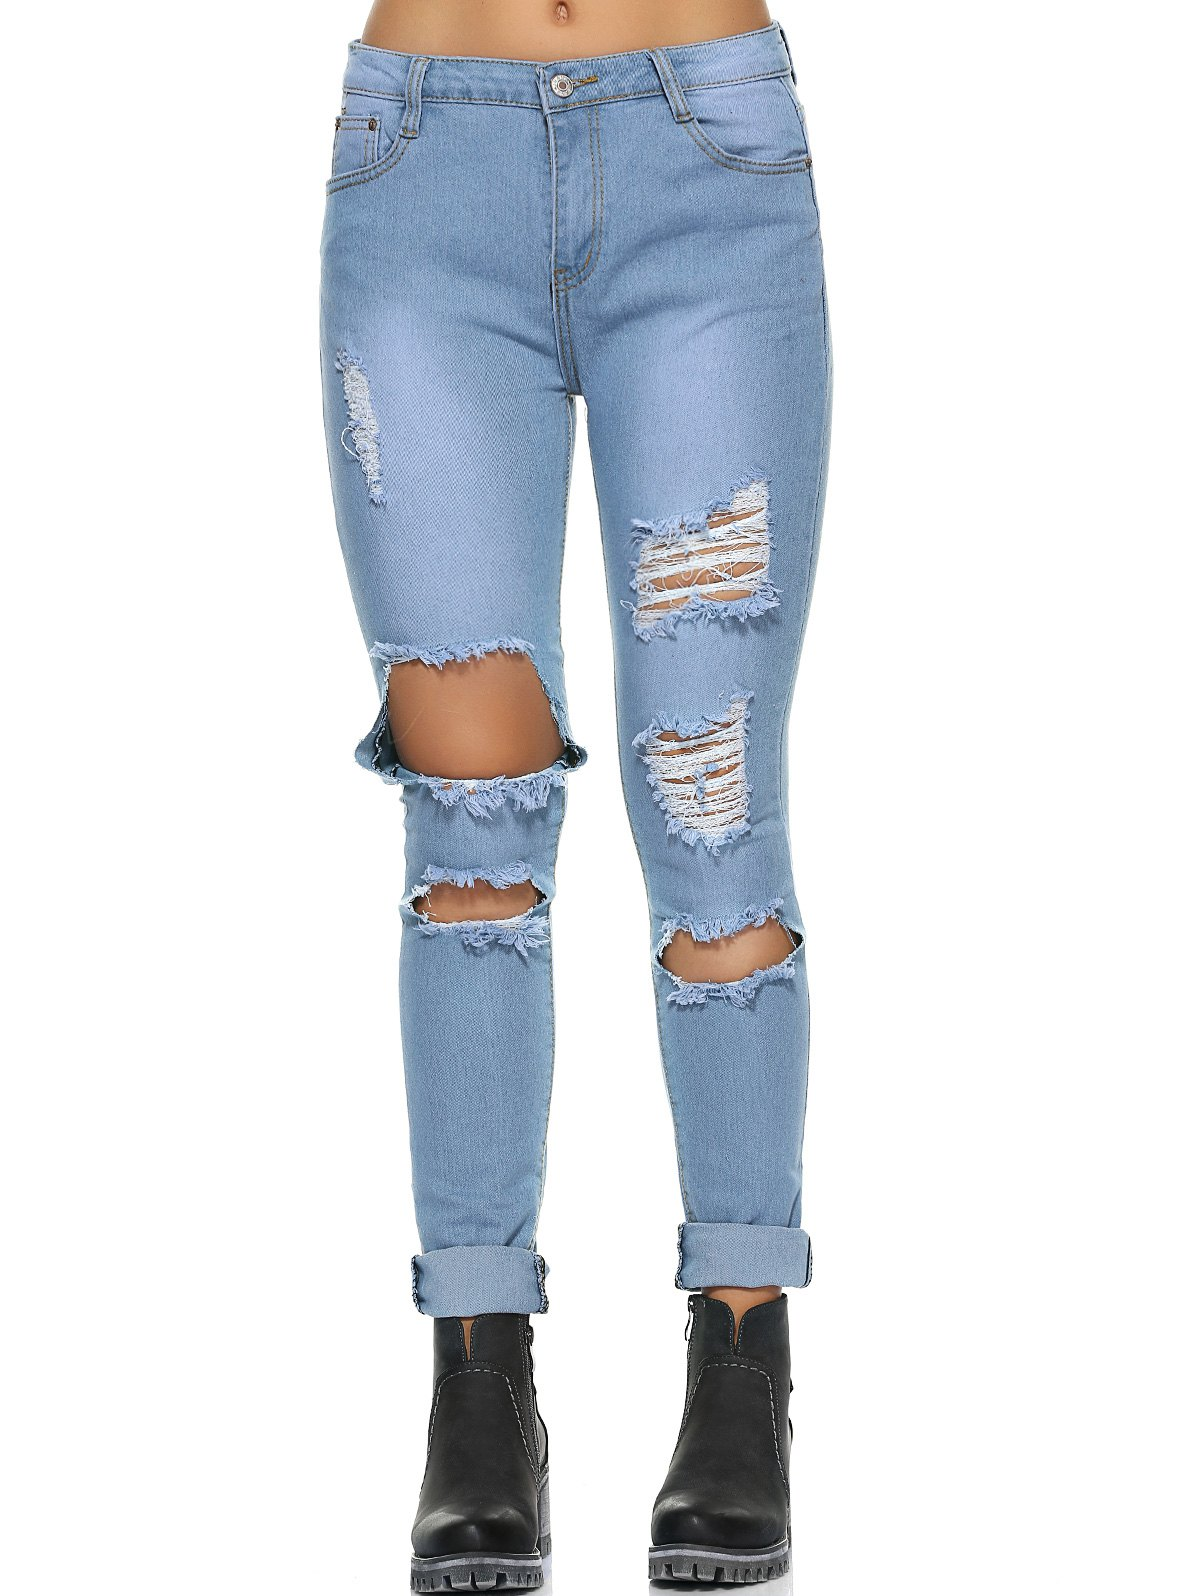 Casual Do Old Ripped Jeans - LIGHT BLUE S